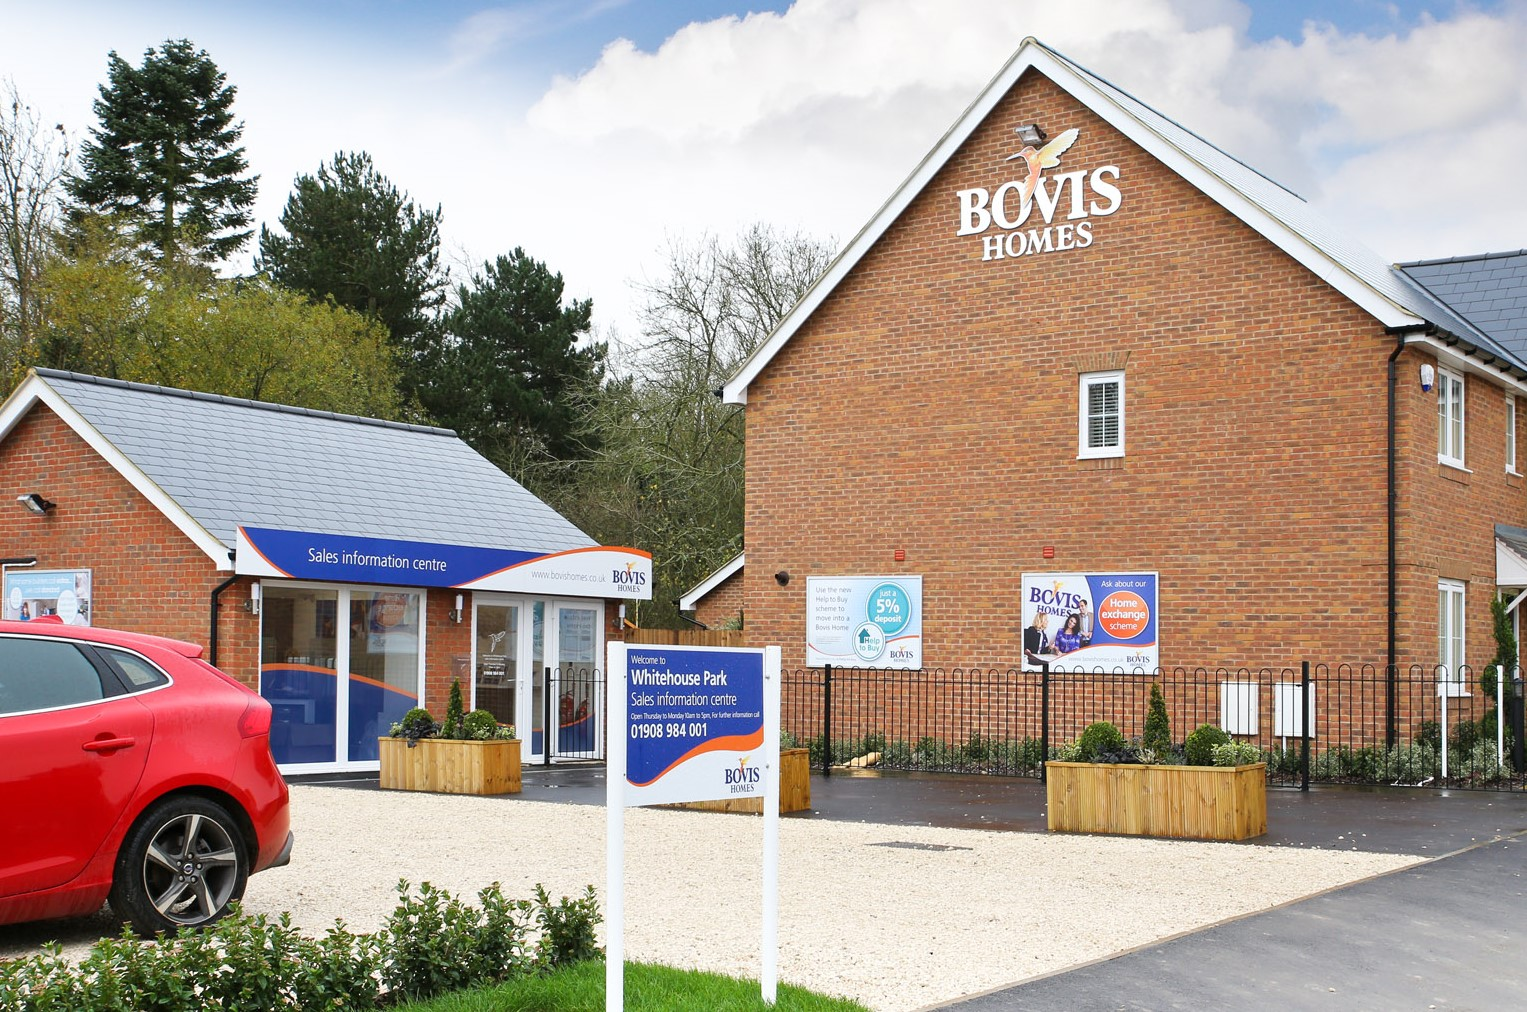 Bovis Homes Whitehouse Park